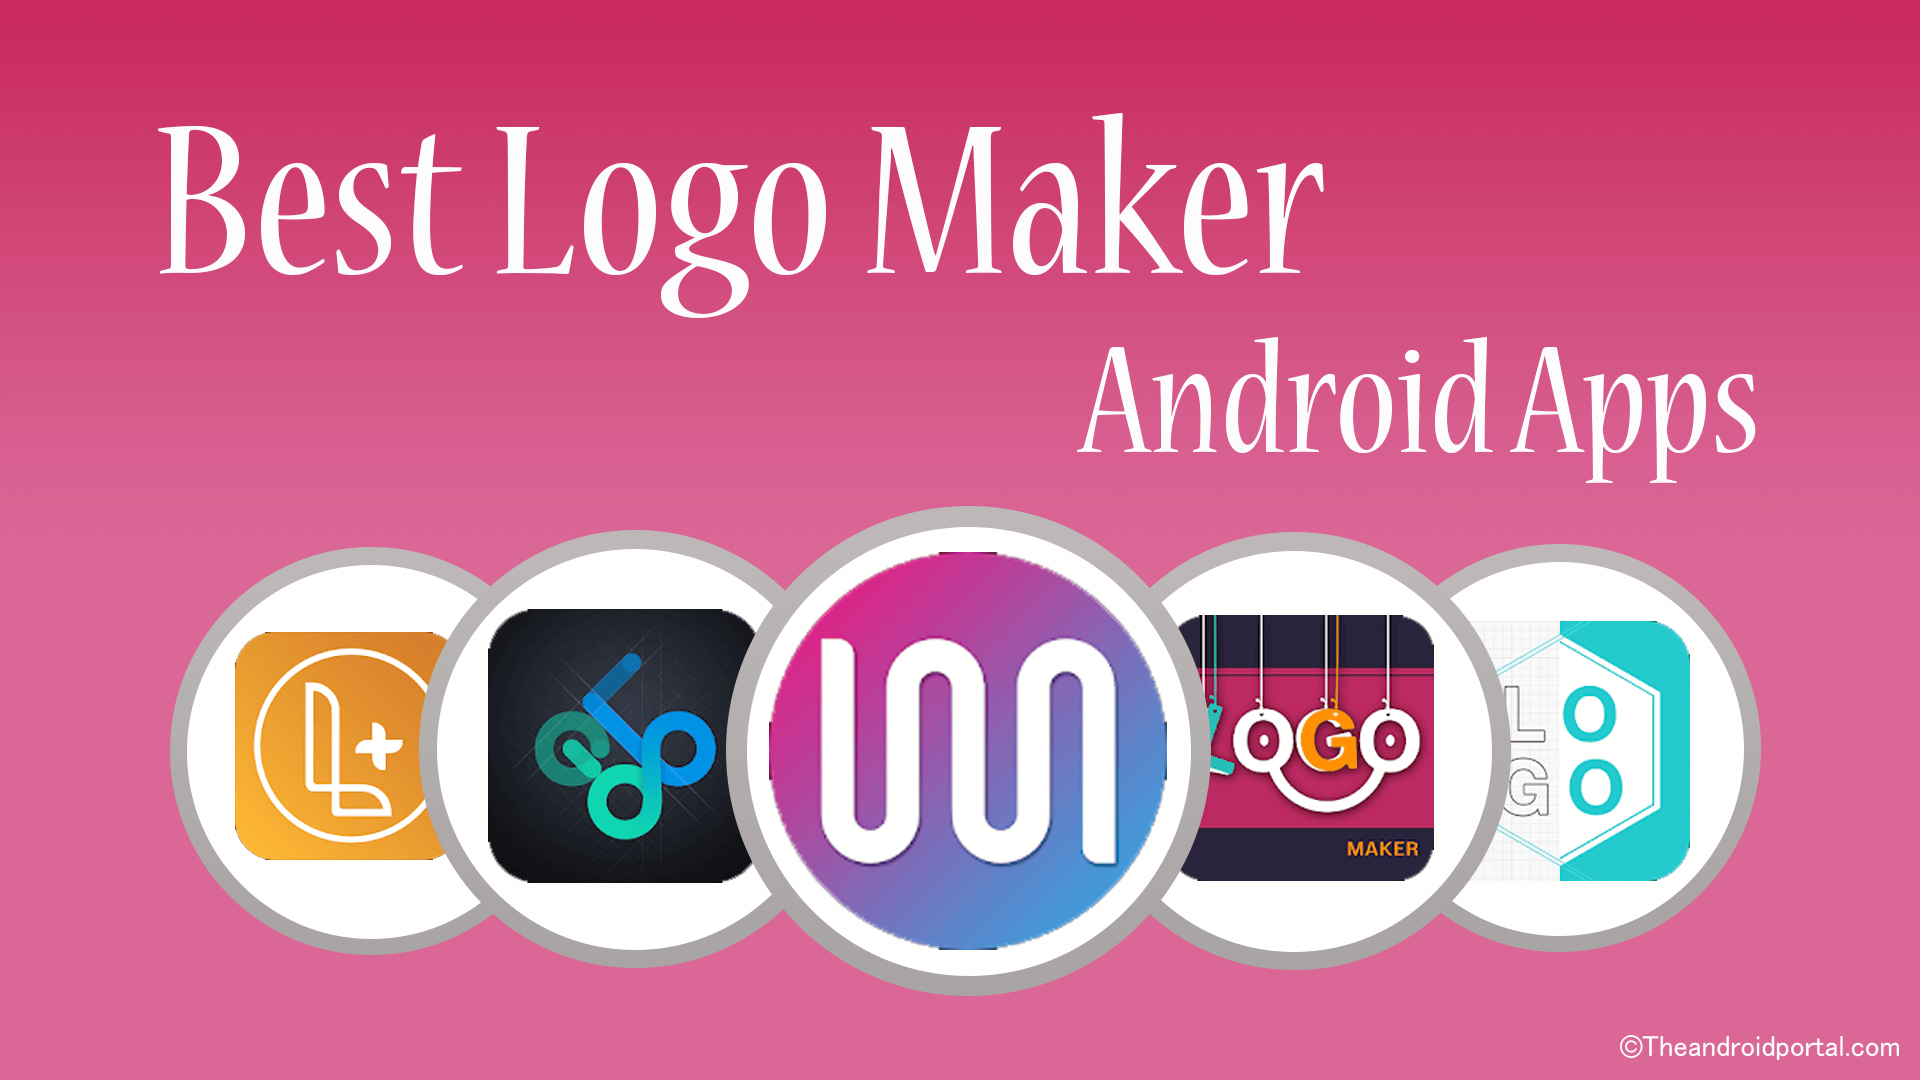 Best Logo Maker Android Apps - theandroidportal.com